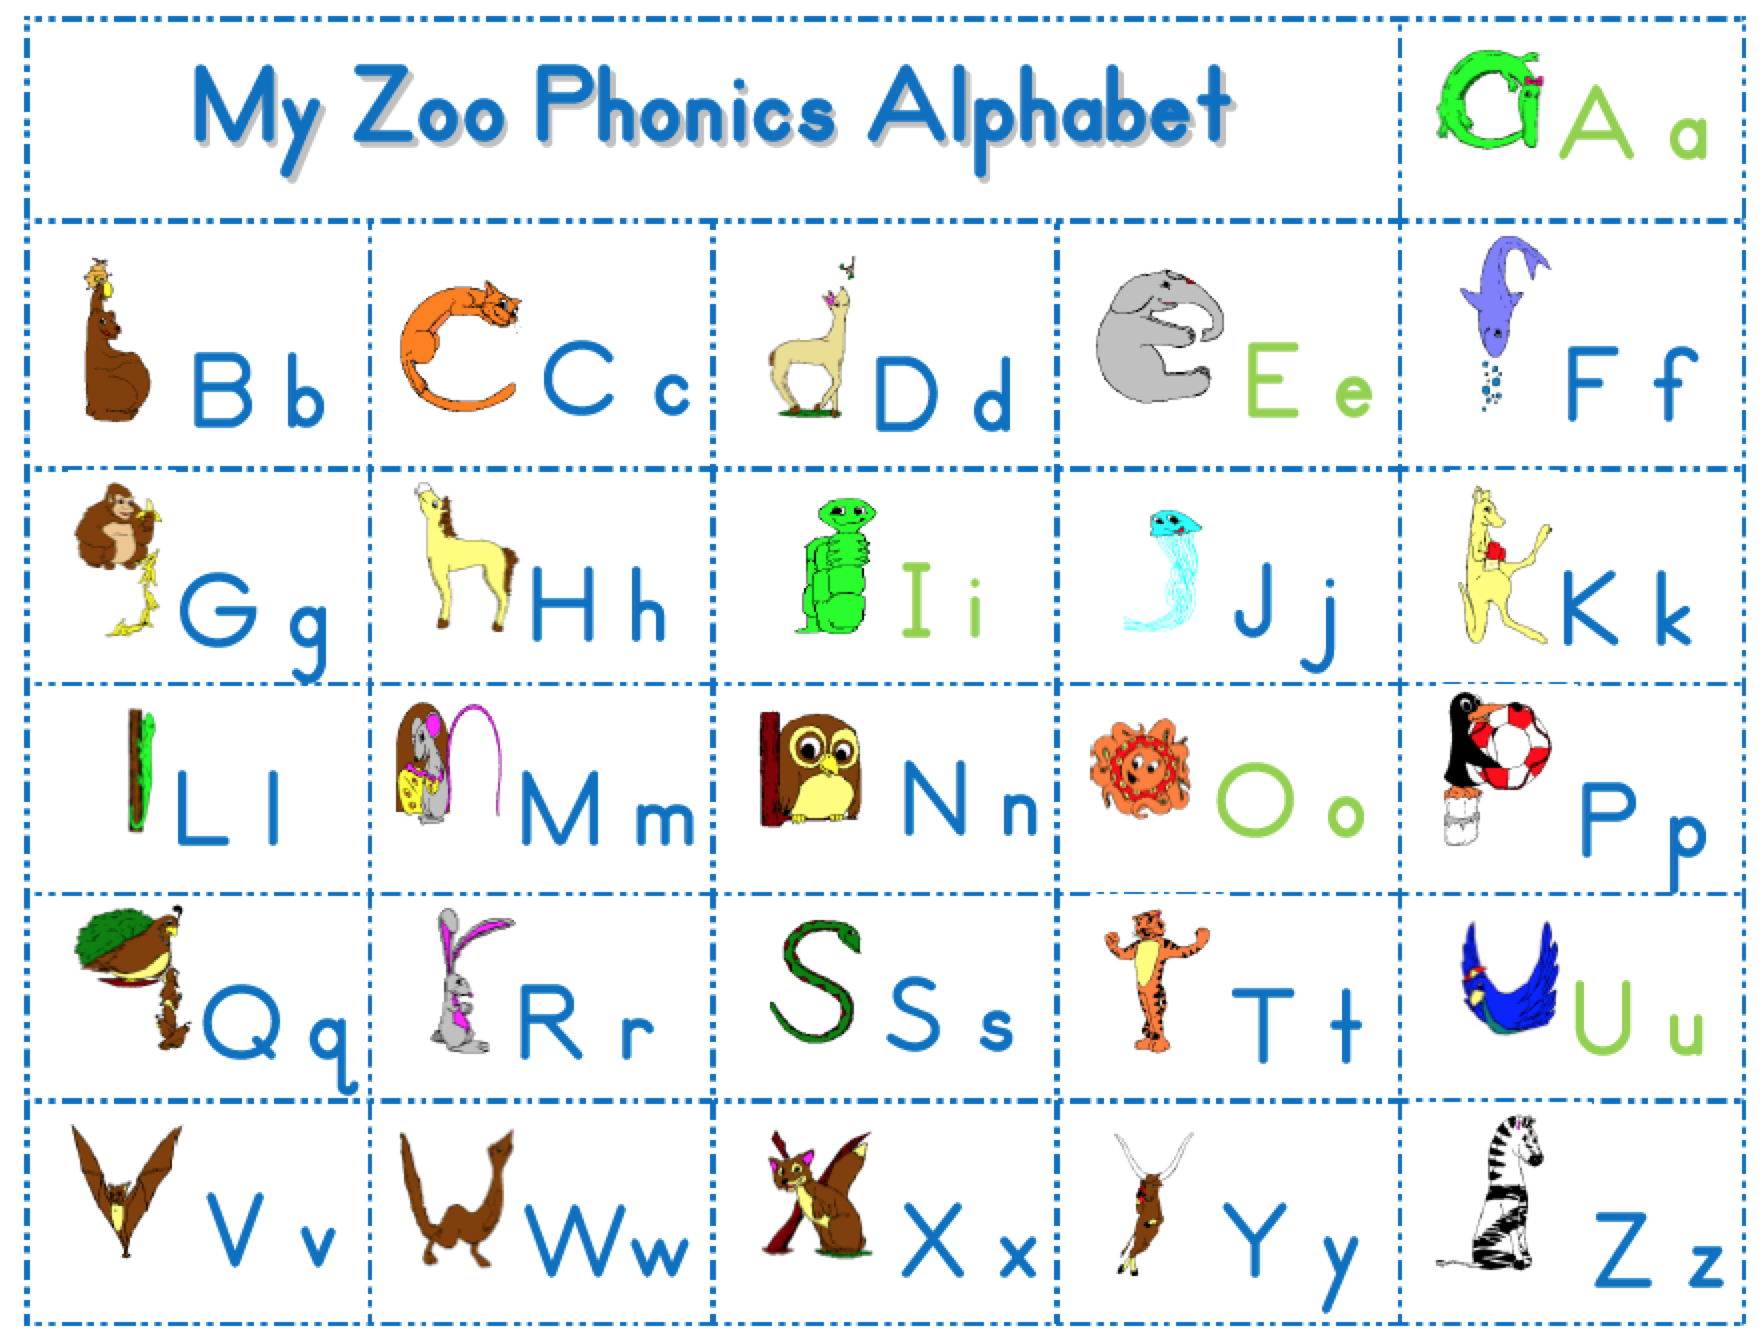 graphic about Zoo Phonics Alphabet Cards Printable referred to as Zoo-Phonics PreK Zoo phonics, Alphabet phonics, Phonics